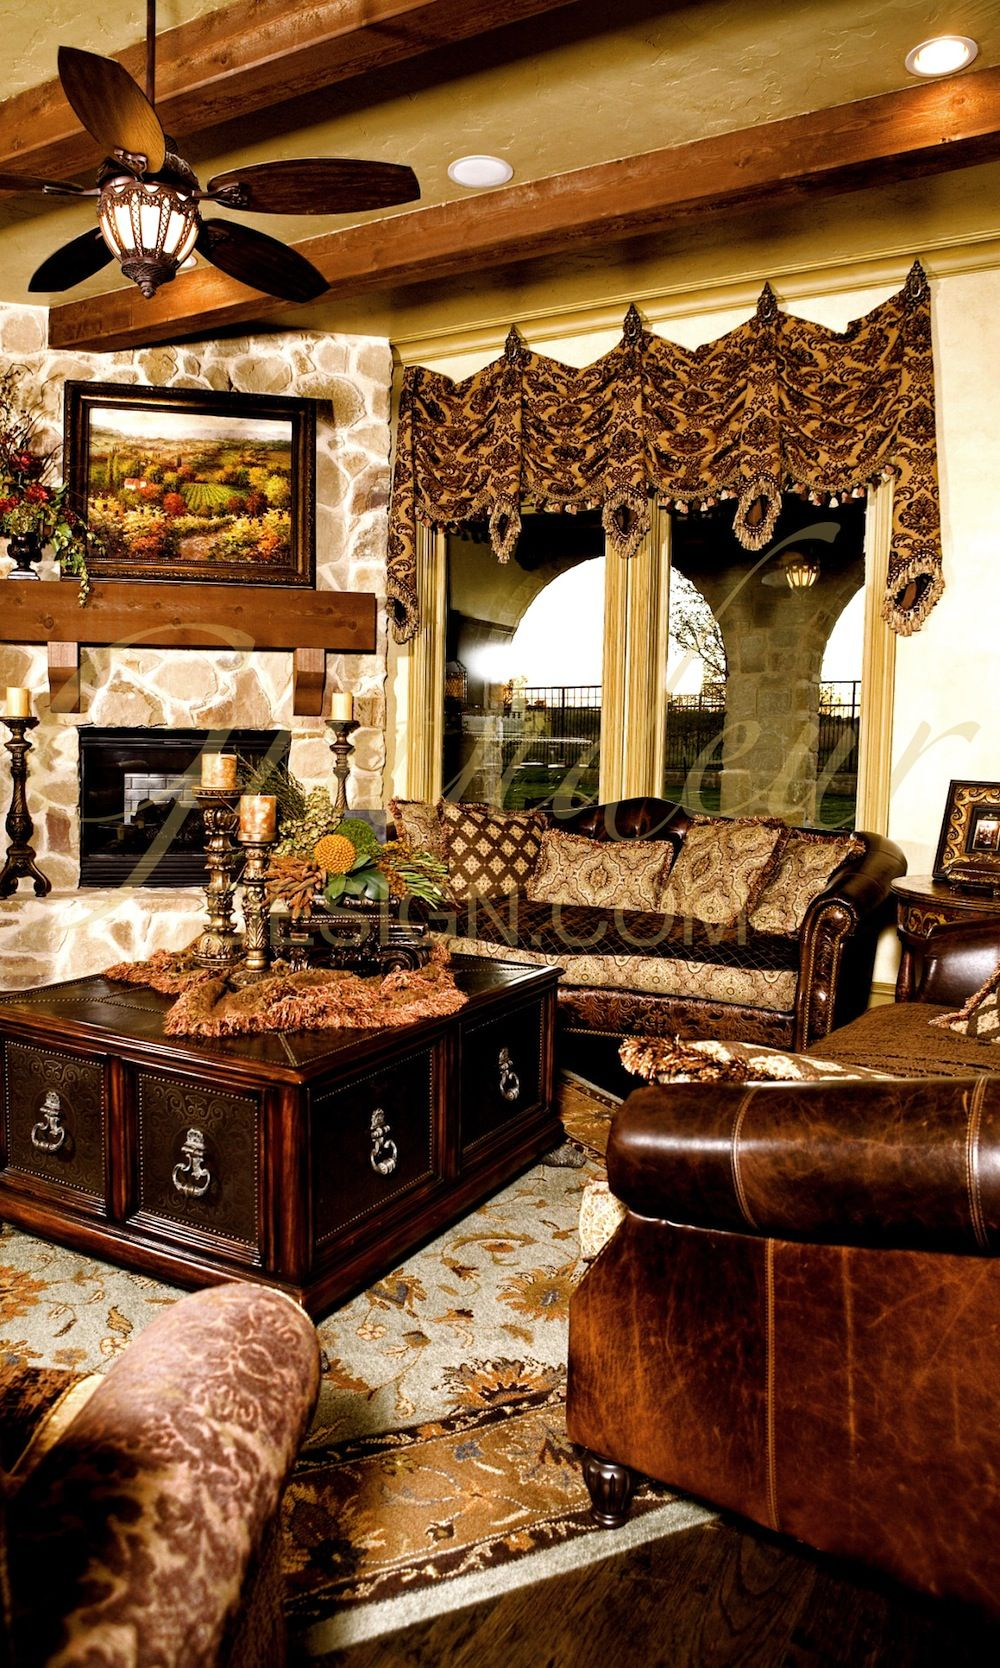 Album 5 « Gallery 6 « Living Room   Grandeur Designs